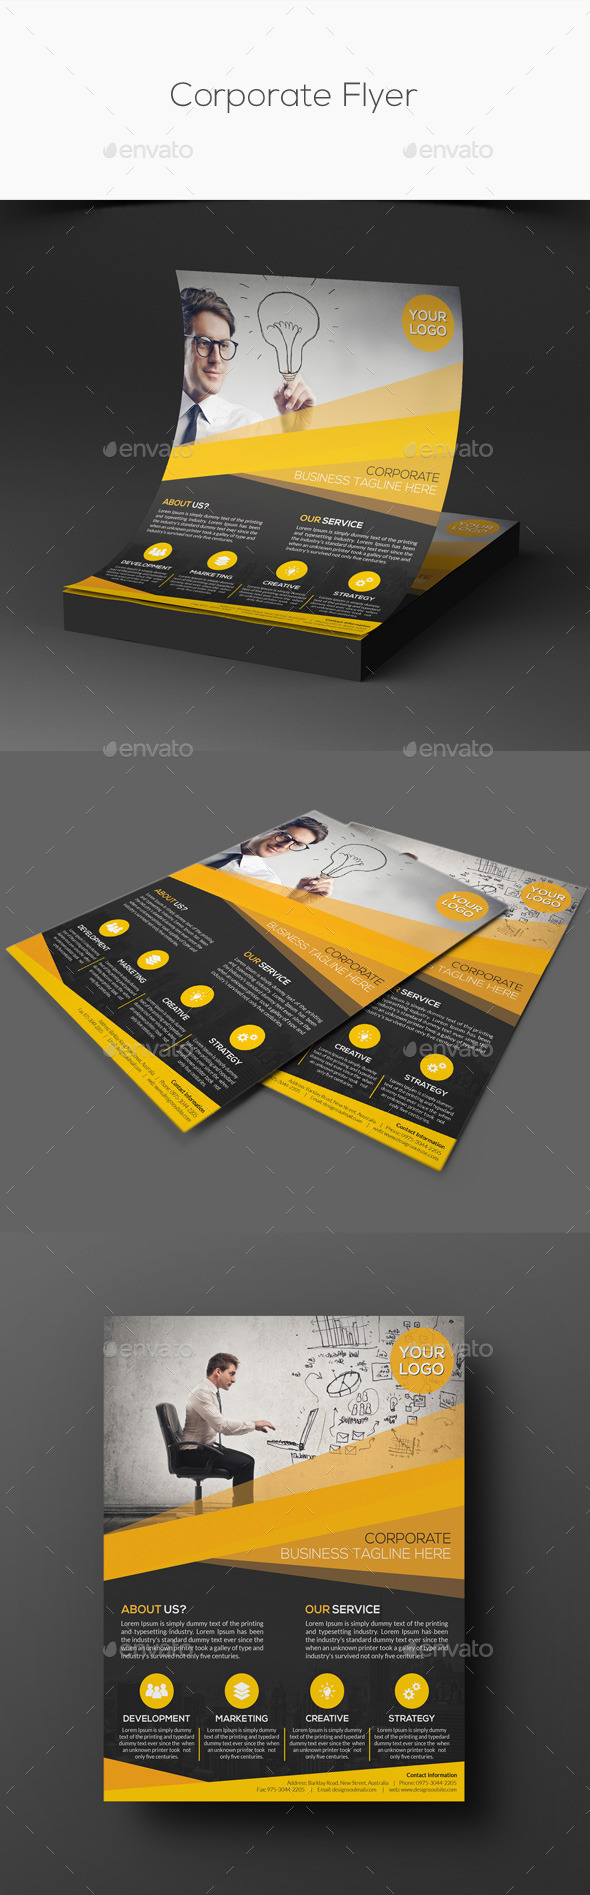 GraphicRiver Corporate Flyer 11464100